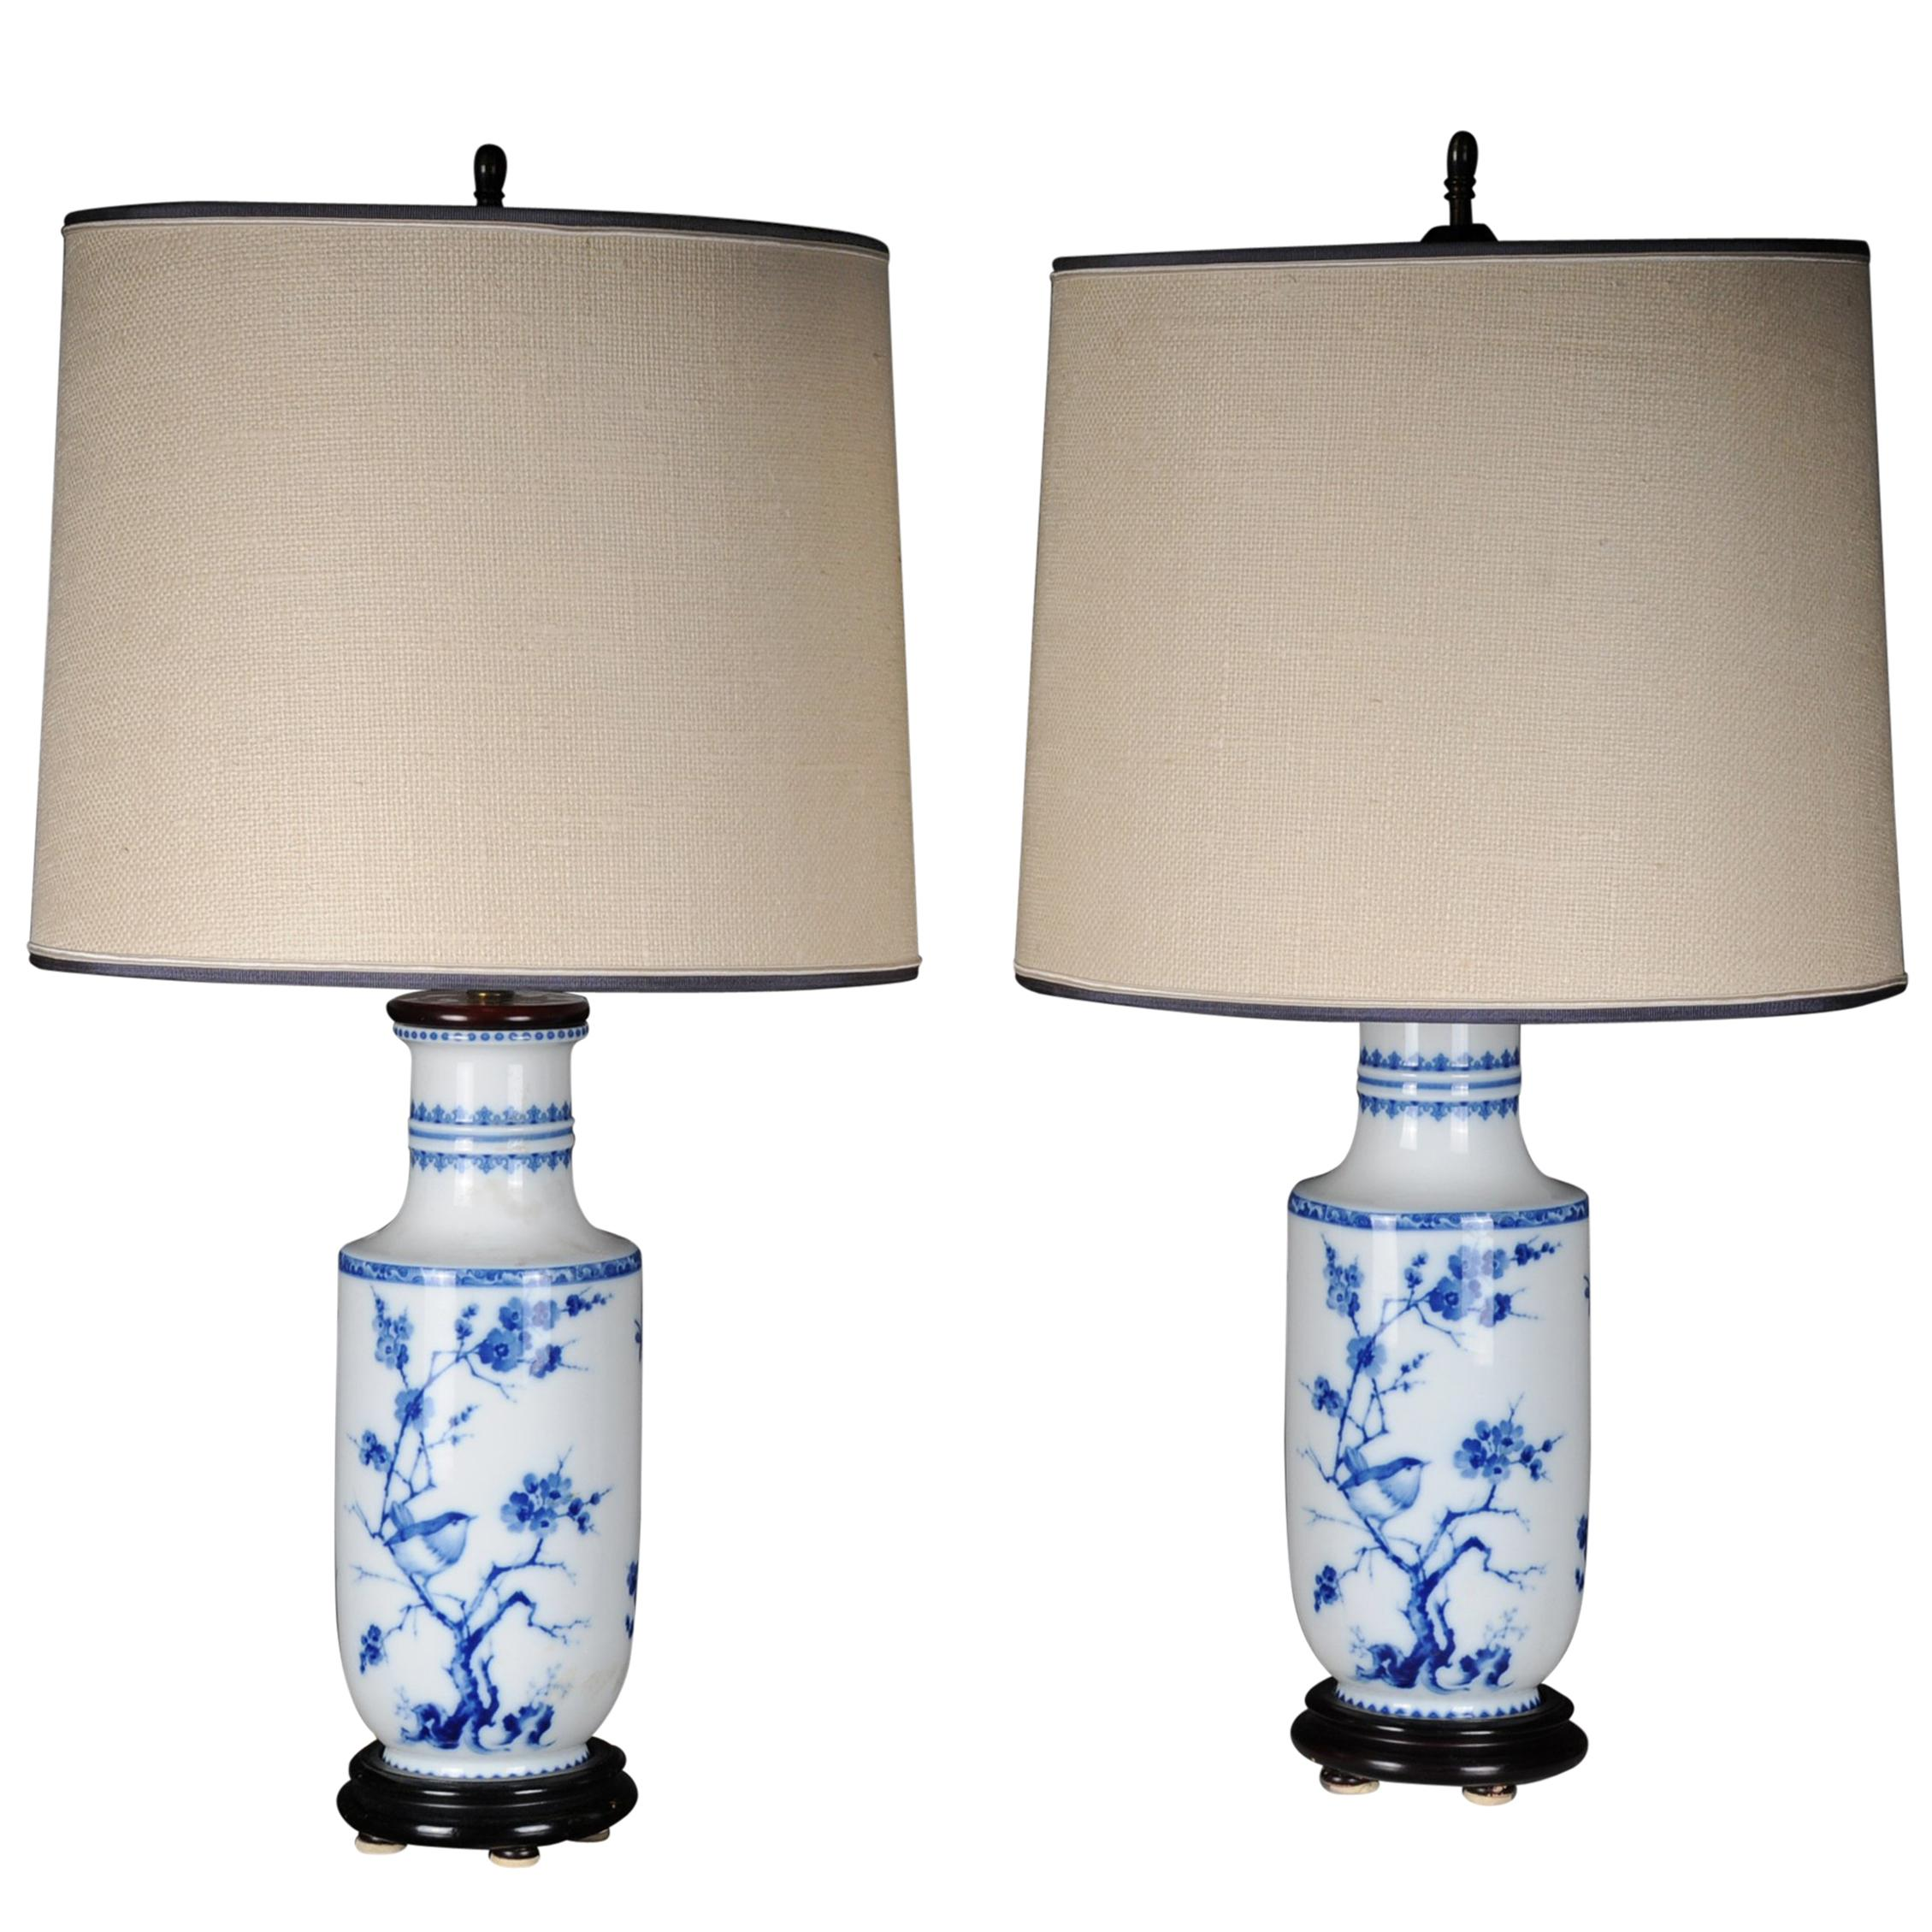 Asian Table Lamp Pair Of Asian Table Lamps Or Table Lamps Porcelain 20th Century Asian Art